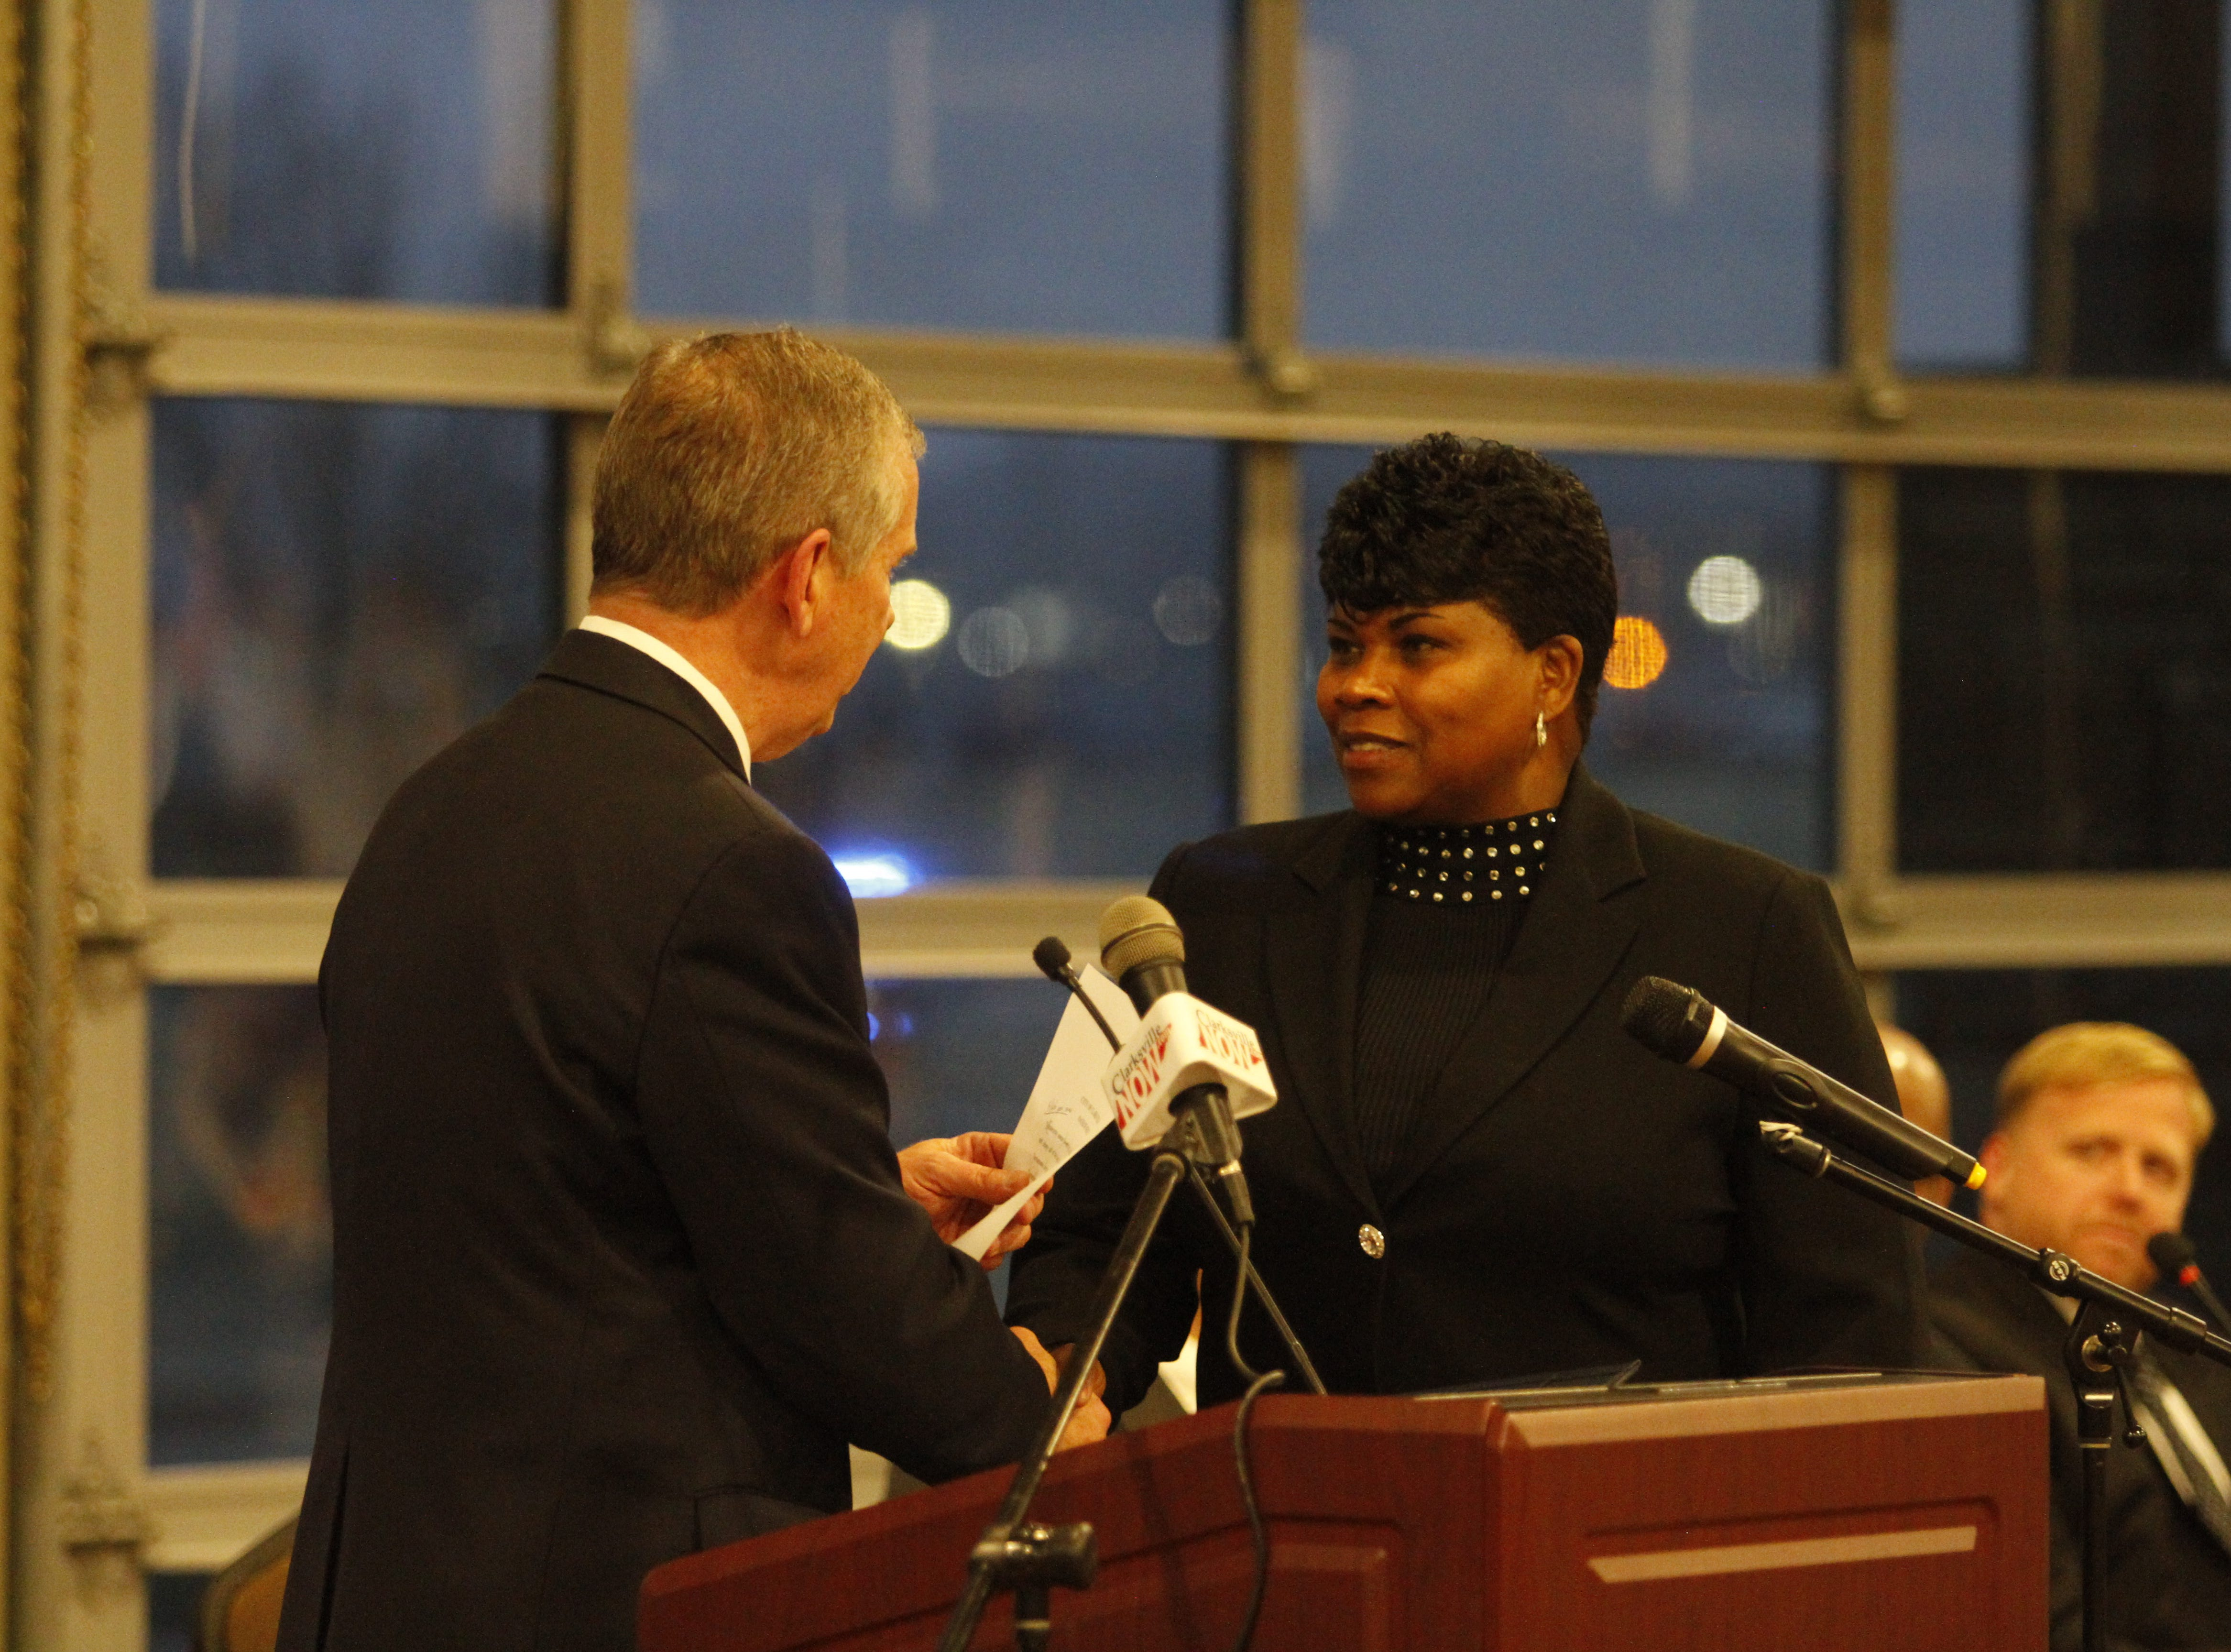 Mayor Joe Pitts swears in council member Wanda Smith for her next council term on Wednesday afternoon, Jan. 2, 2019, at the Wilma Rudolph Event Center.